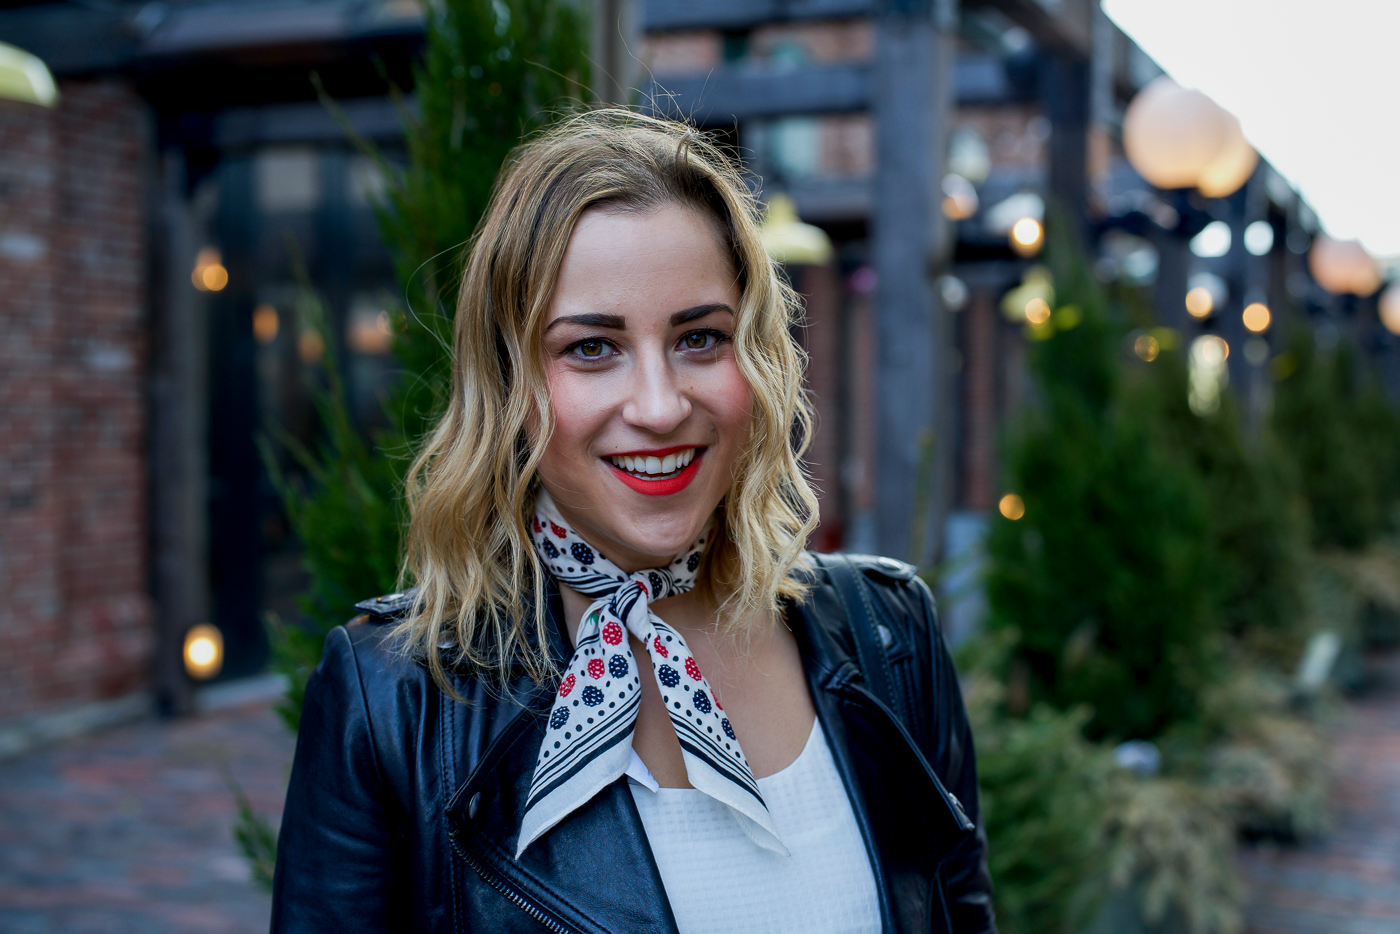 Toronto fashion and lifestyle blogger, Jackie of Something About That, wearing an edgy weekend outfit, with a black leather jacket and printed neck scarf from J.Crew